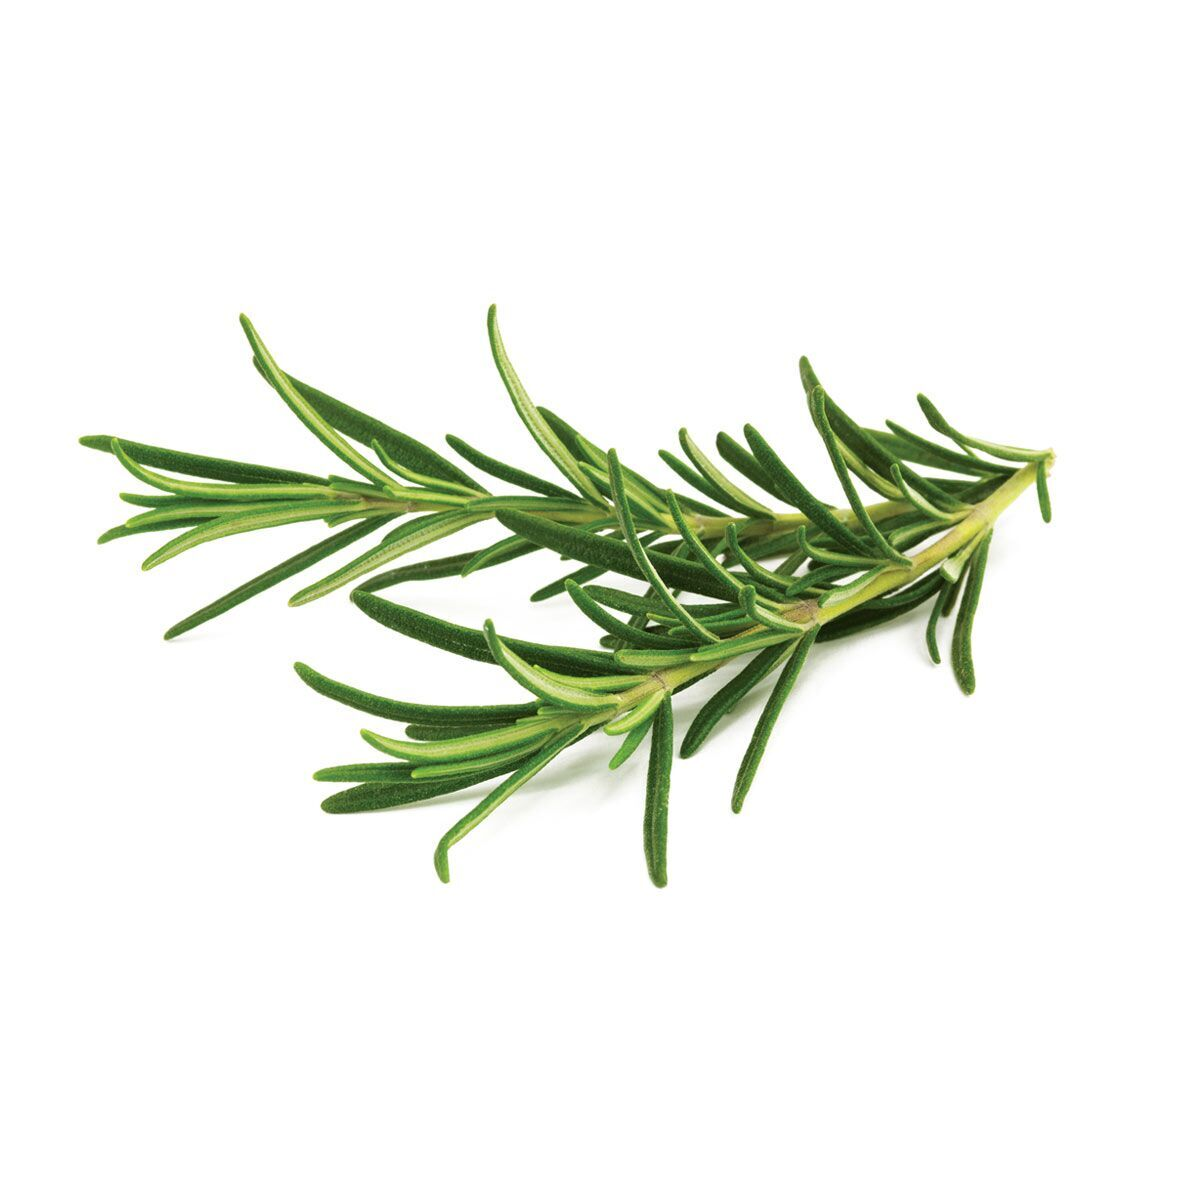 rosemary-1200x1200_preview.jpg